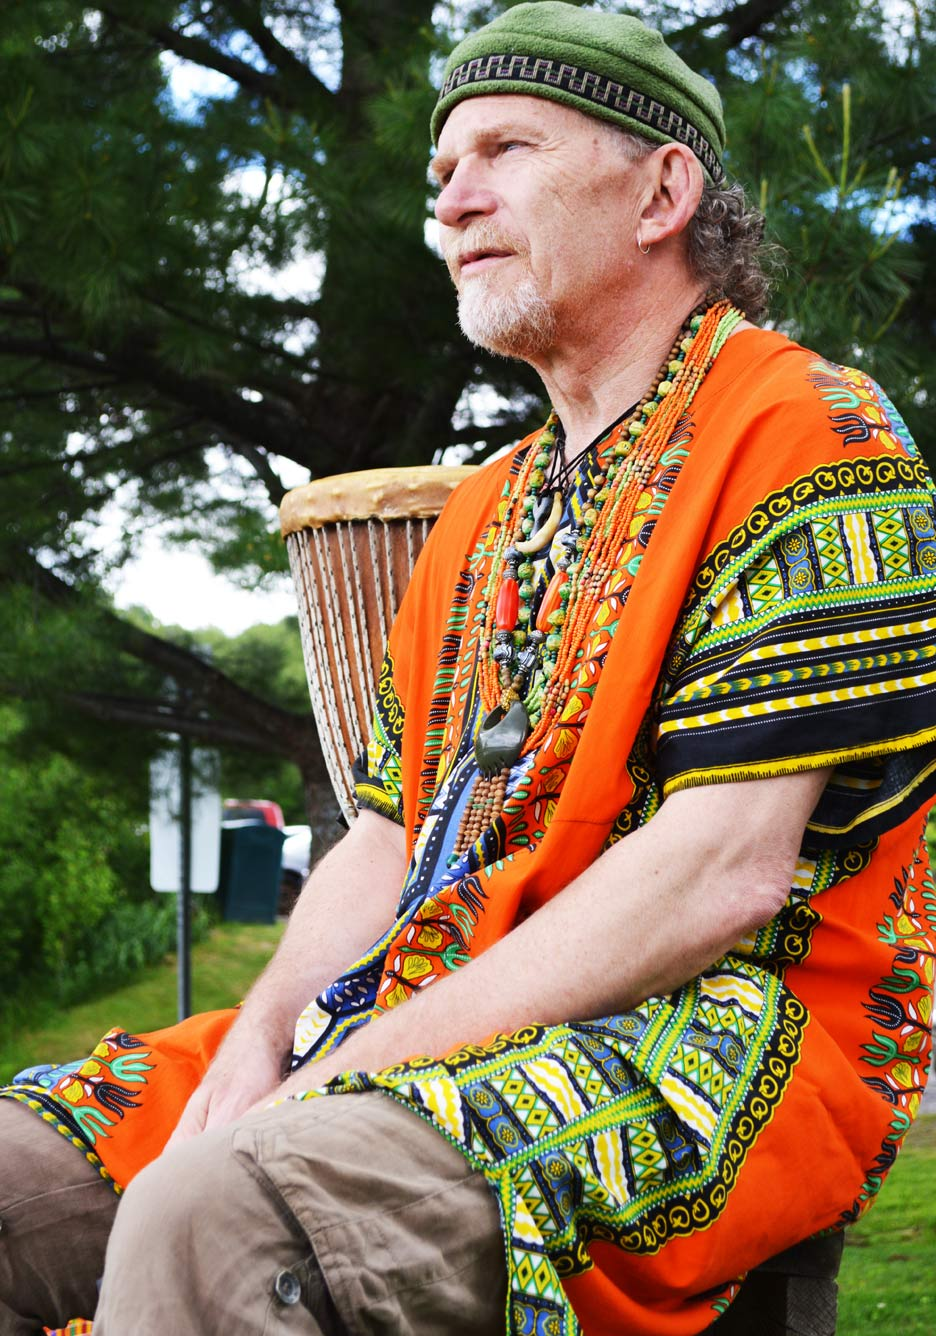 According to Barry, the drum is a powerful instrument that brings people together in a harmonious way.